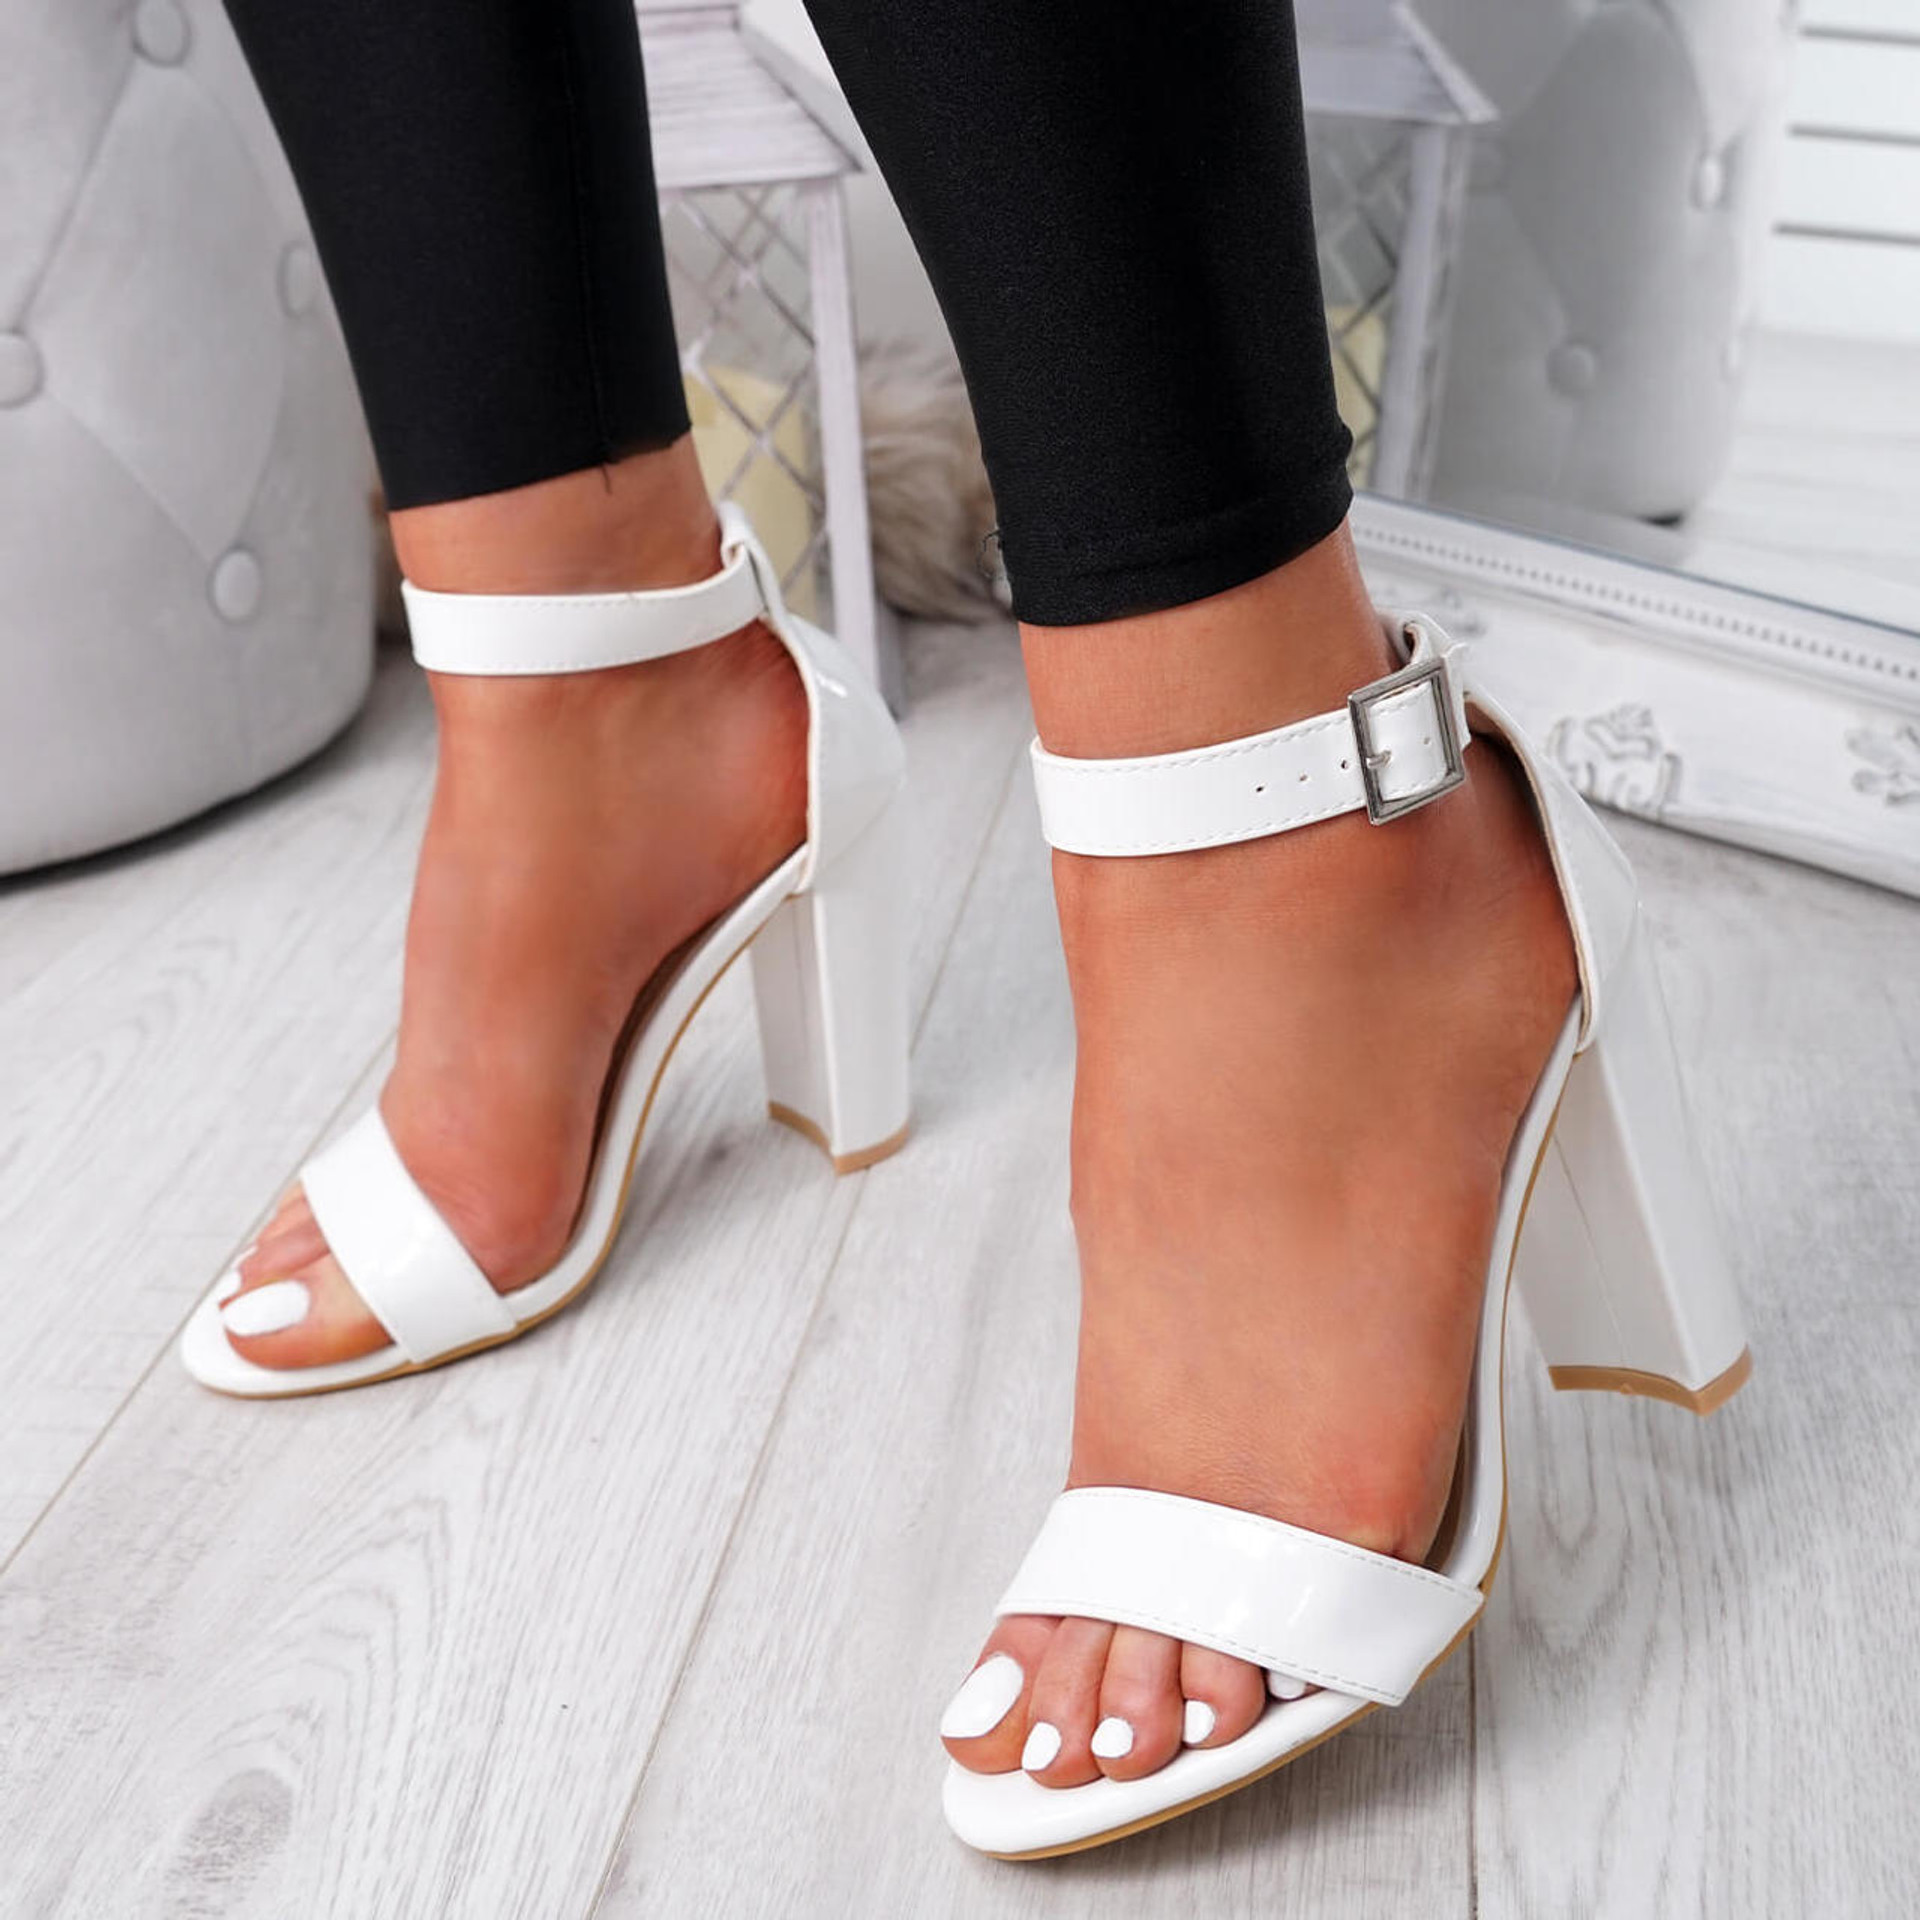 womens white ankle strap patent sandals size uk 3 4 5 6 7 8